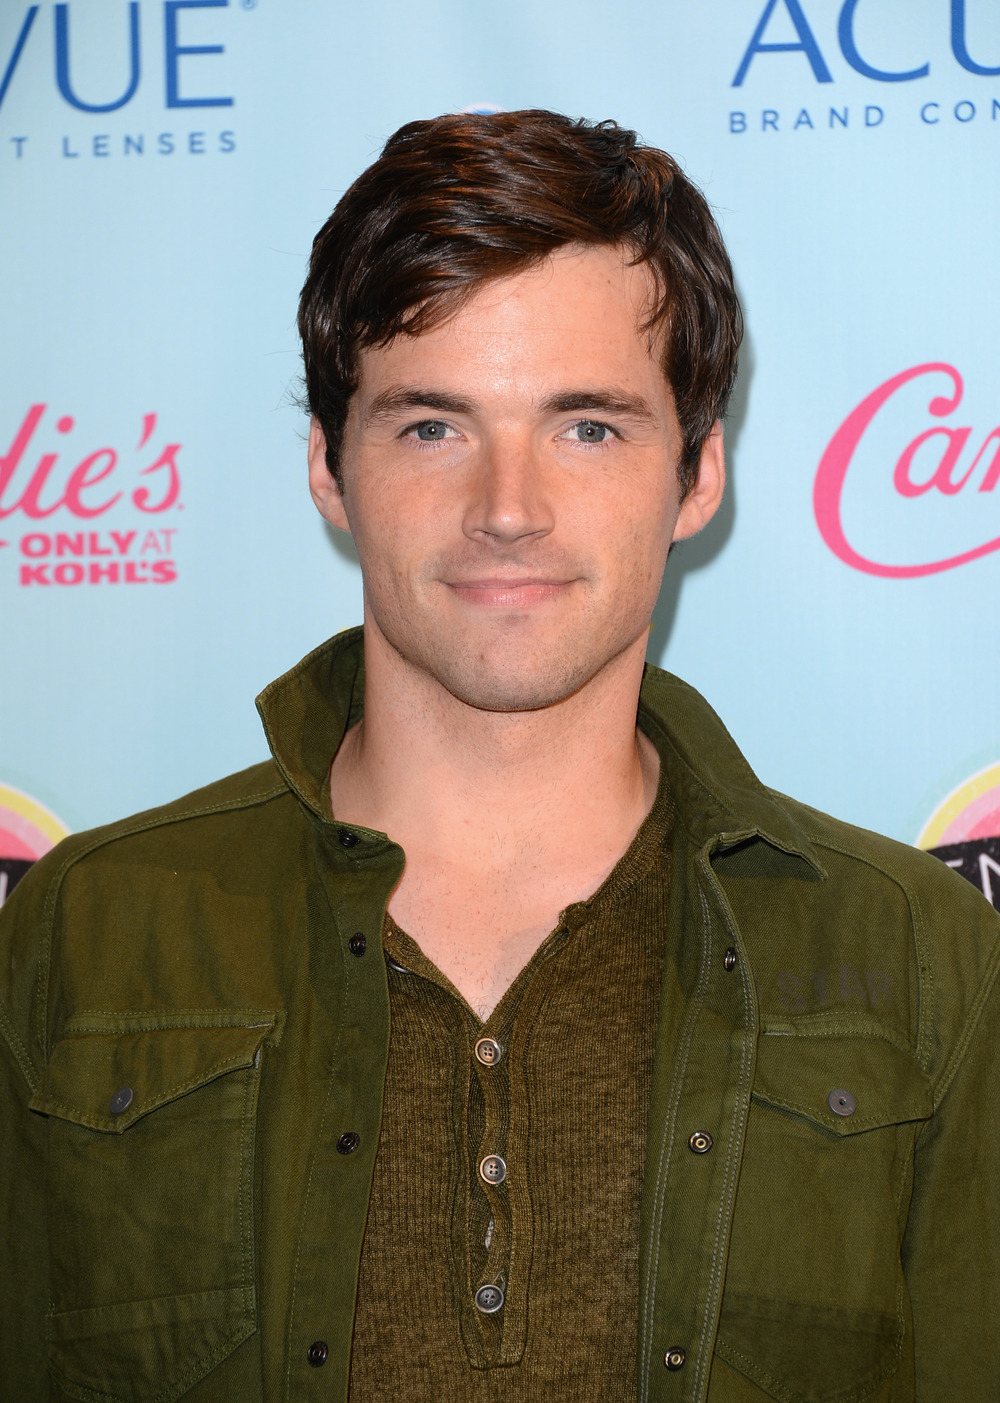 Pretty Little Liars Star Ian Harding Books Movie Role in Bethlehem